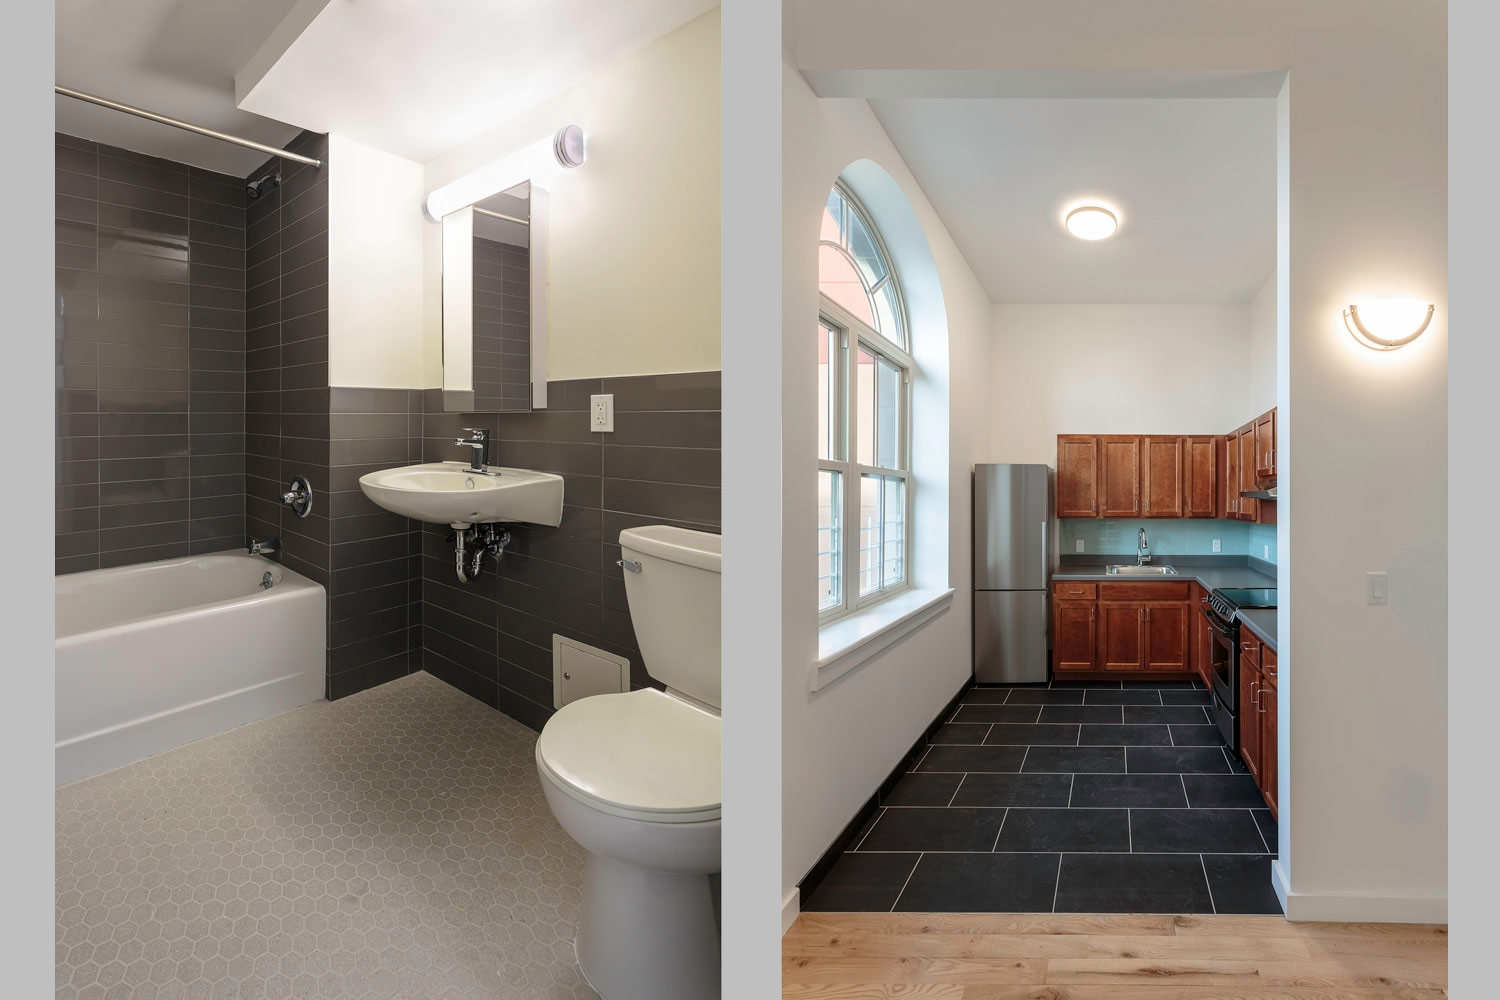 Our Lady of Lourdes Apartments creates 76 units of highly efficient, affordable apartments